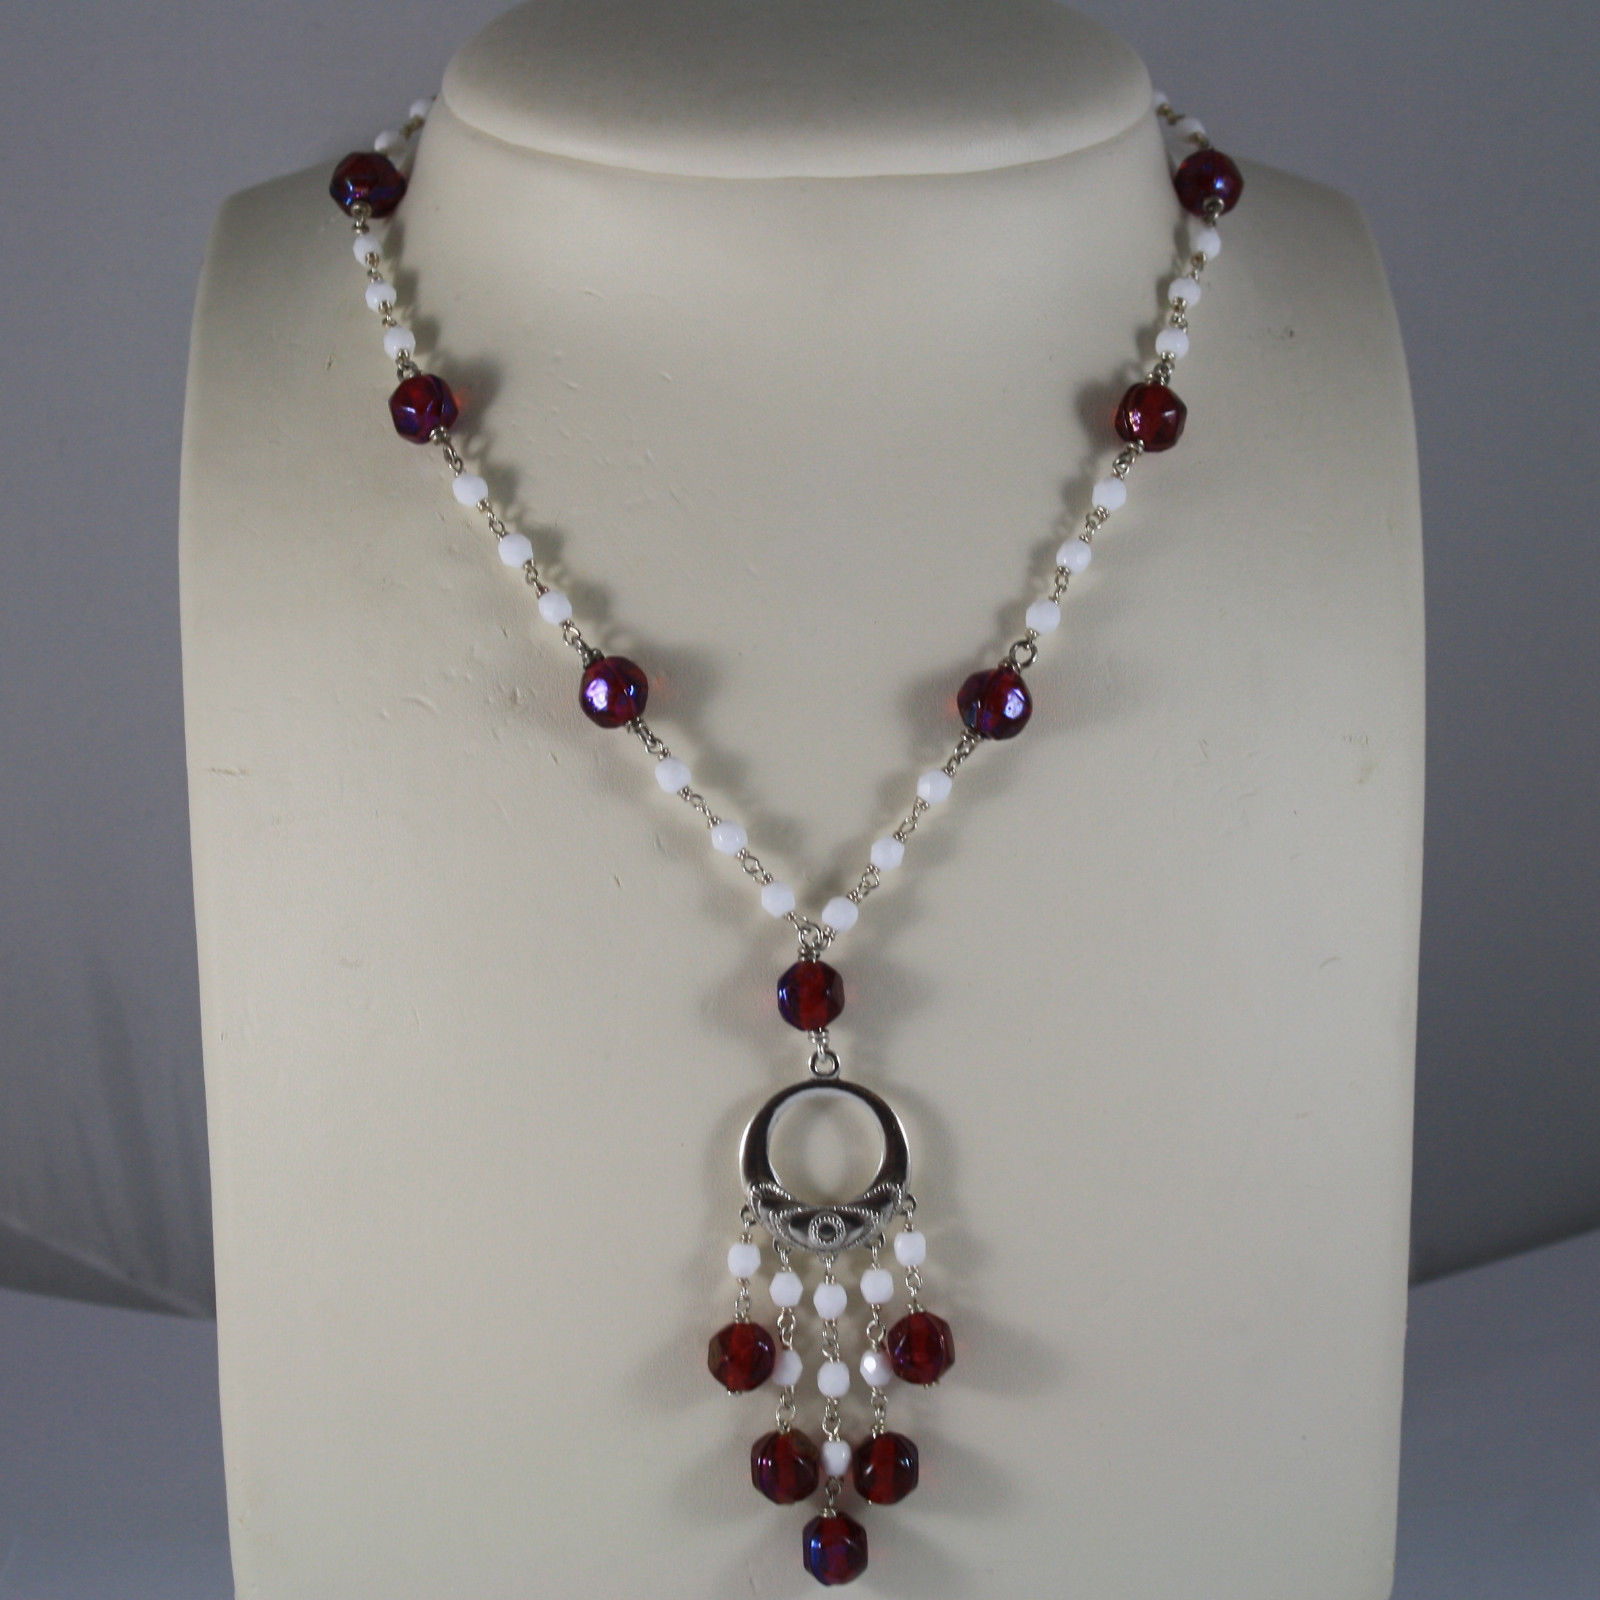 .925 RHODIUM SILVER NECKLACE WITH RED CRYSTALS AND WHITE AGATE